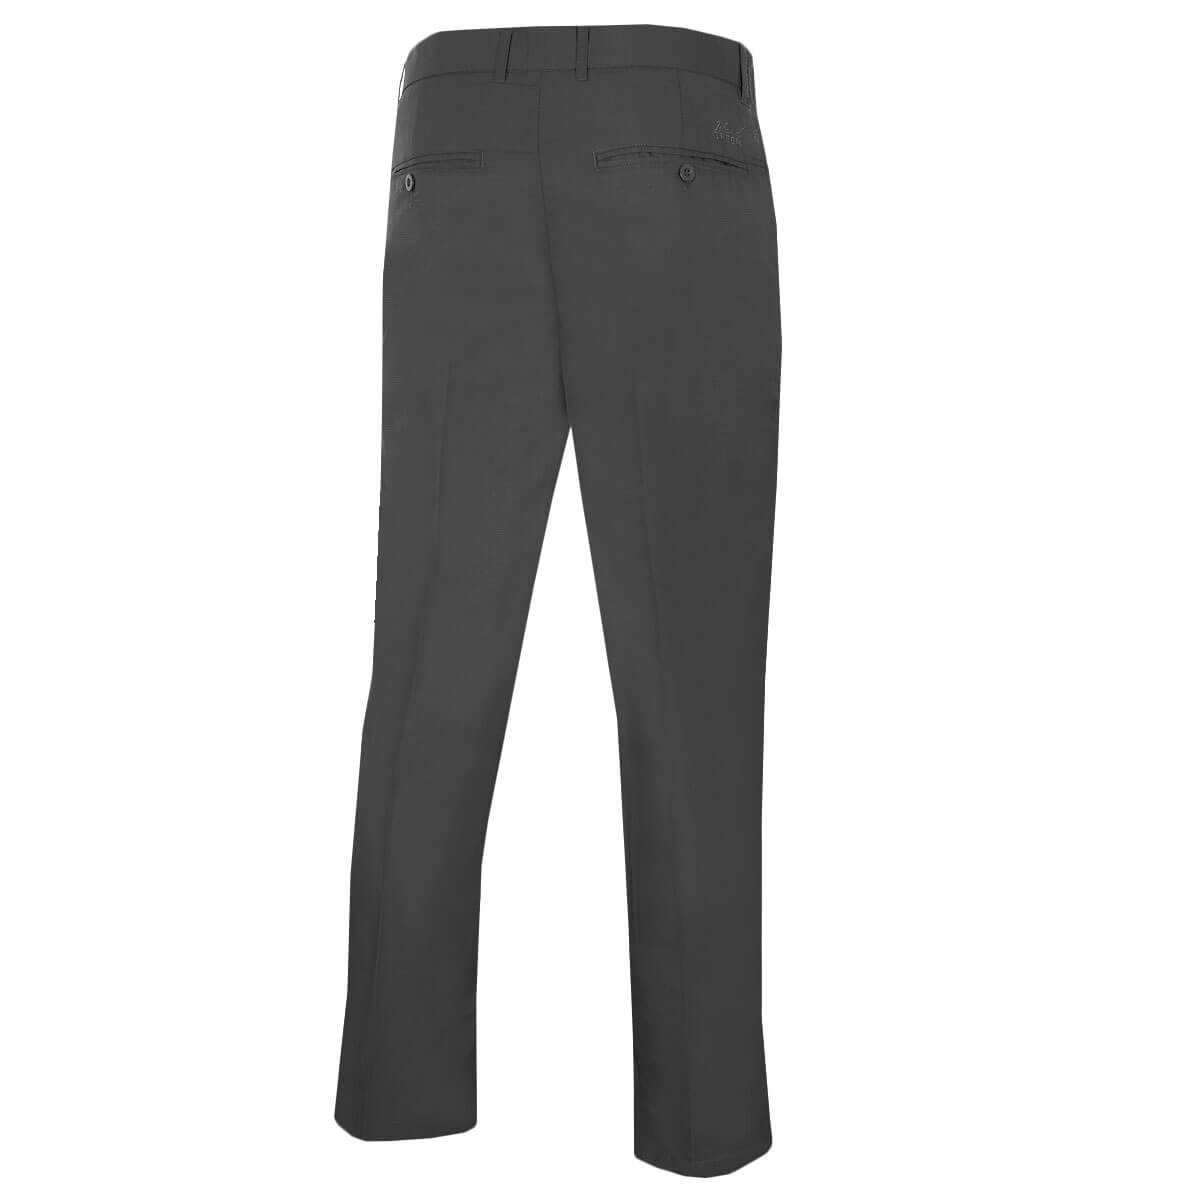 Island-Green-Breathable-Tapered-Slim-Fit-Mens-Golf-Trousers-47-OFF-RRP thumbnail 7